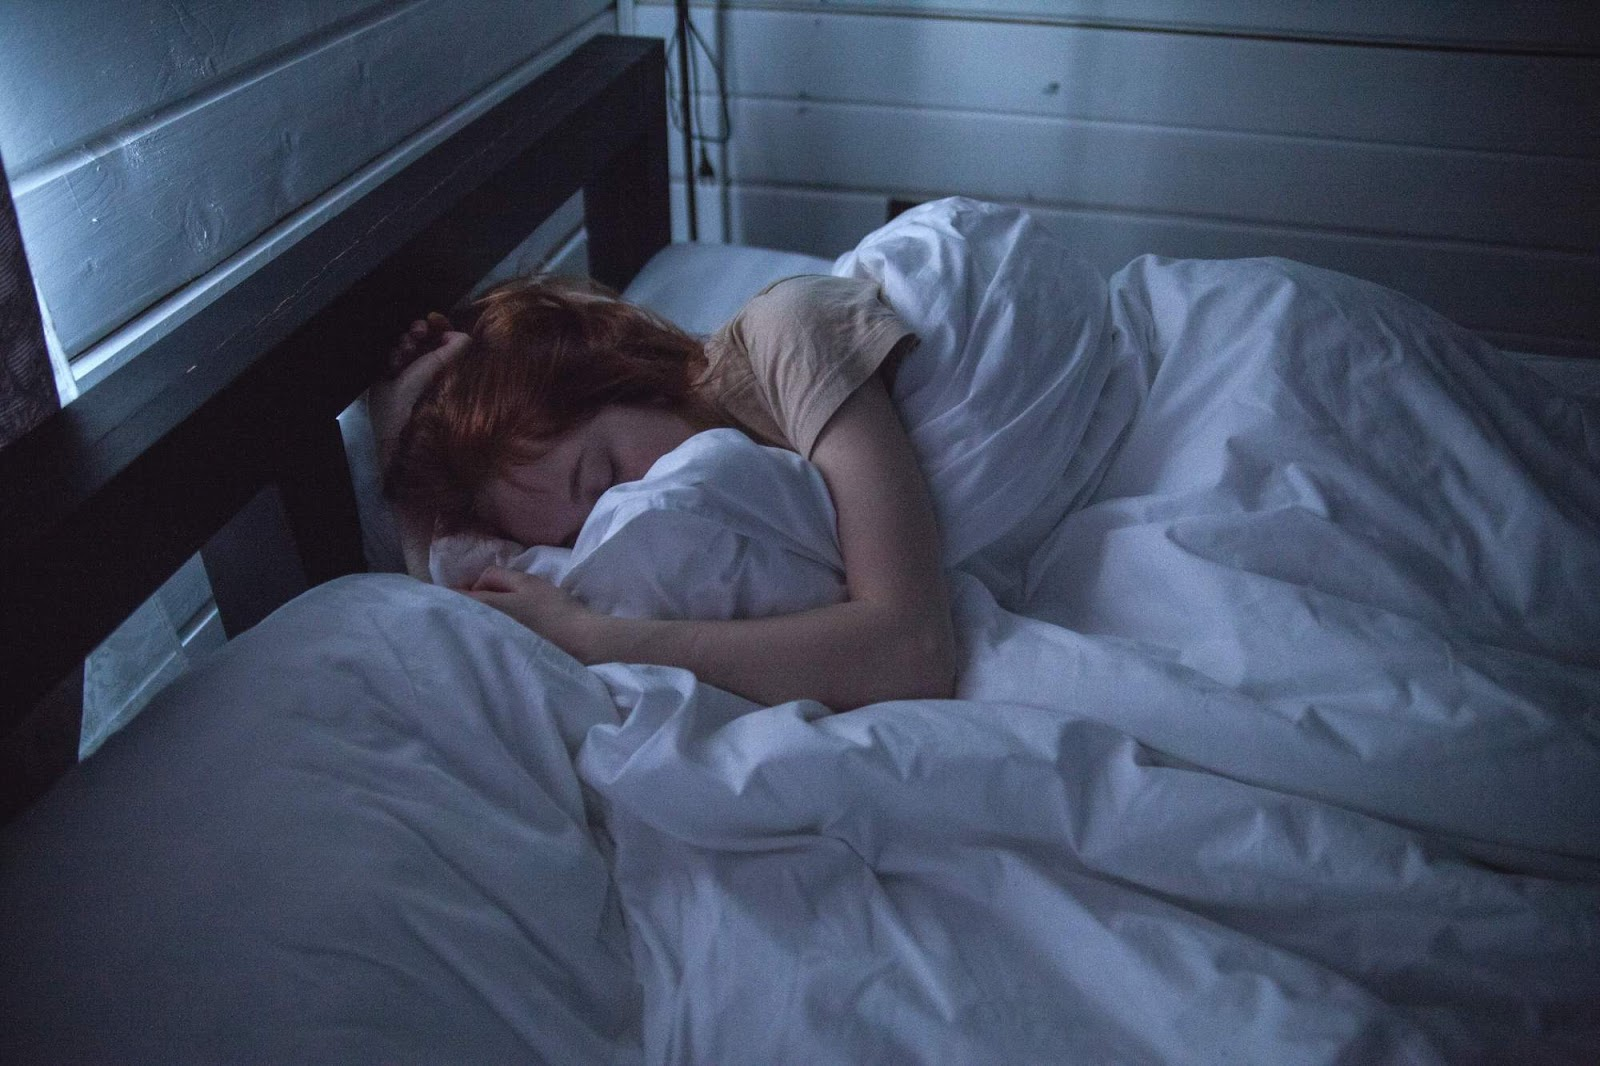 A red-haired woman asleep in a bed with white sheets